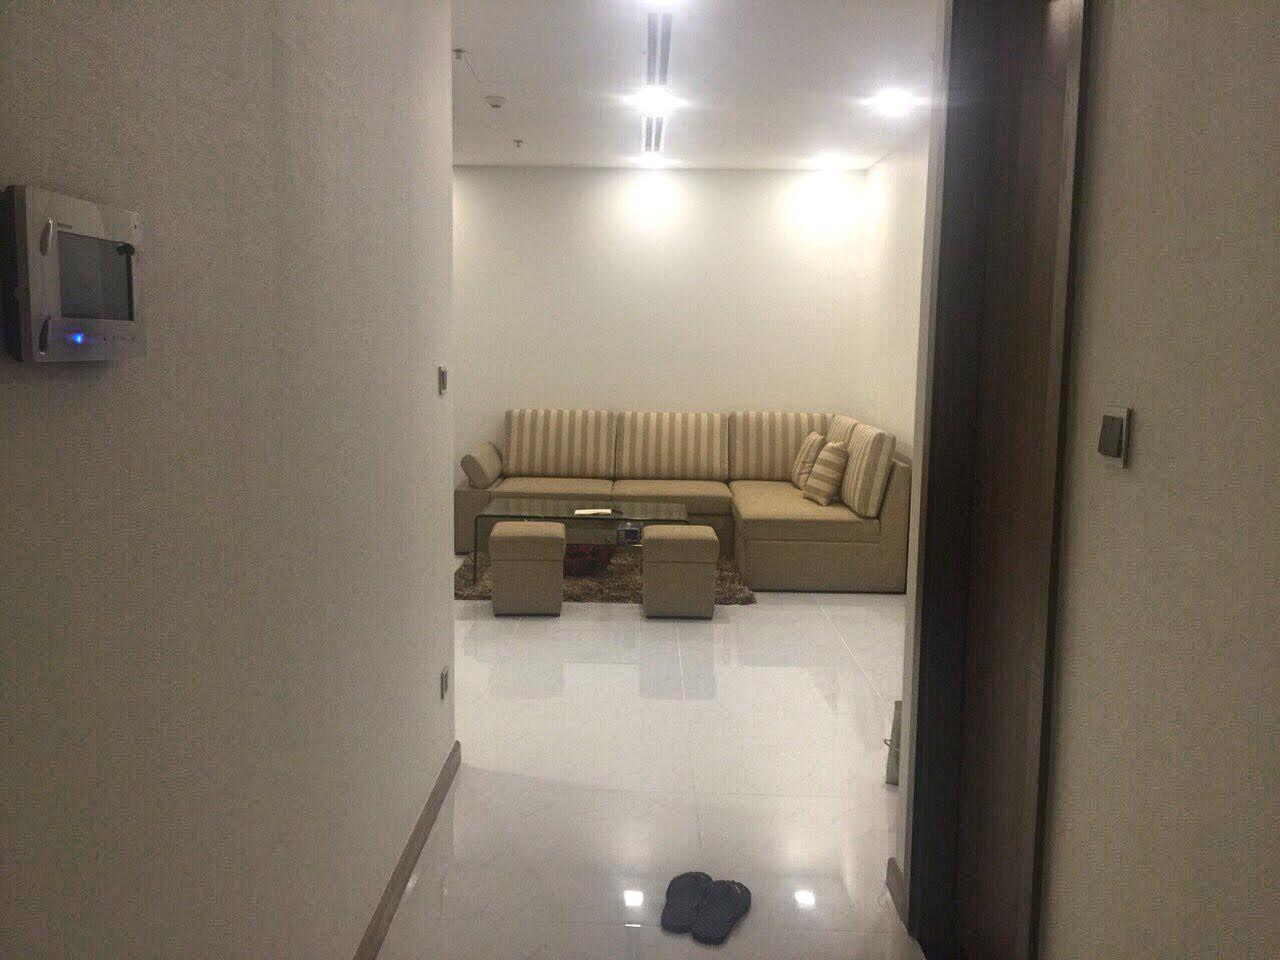 vinhomes central park apartment for rent in binh thanh district hcmc BT105P917 (6)